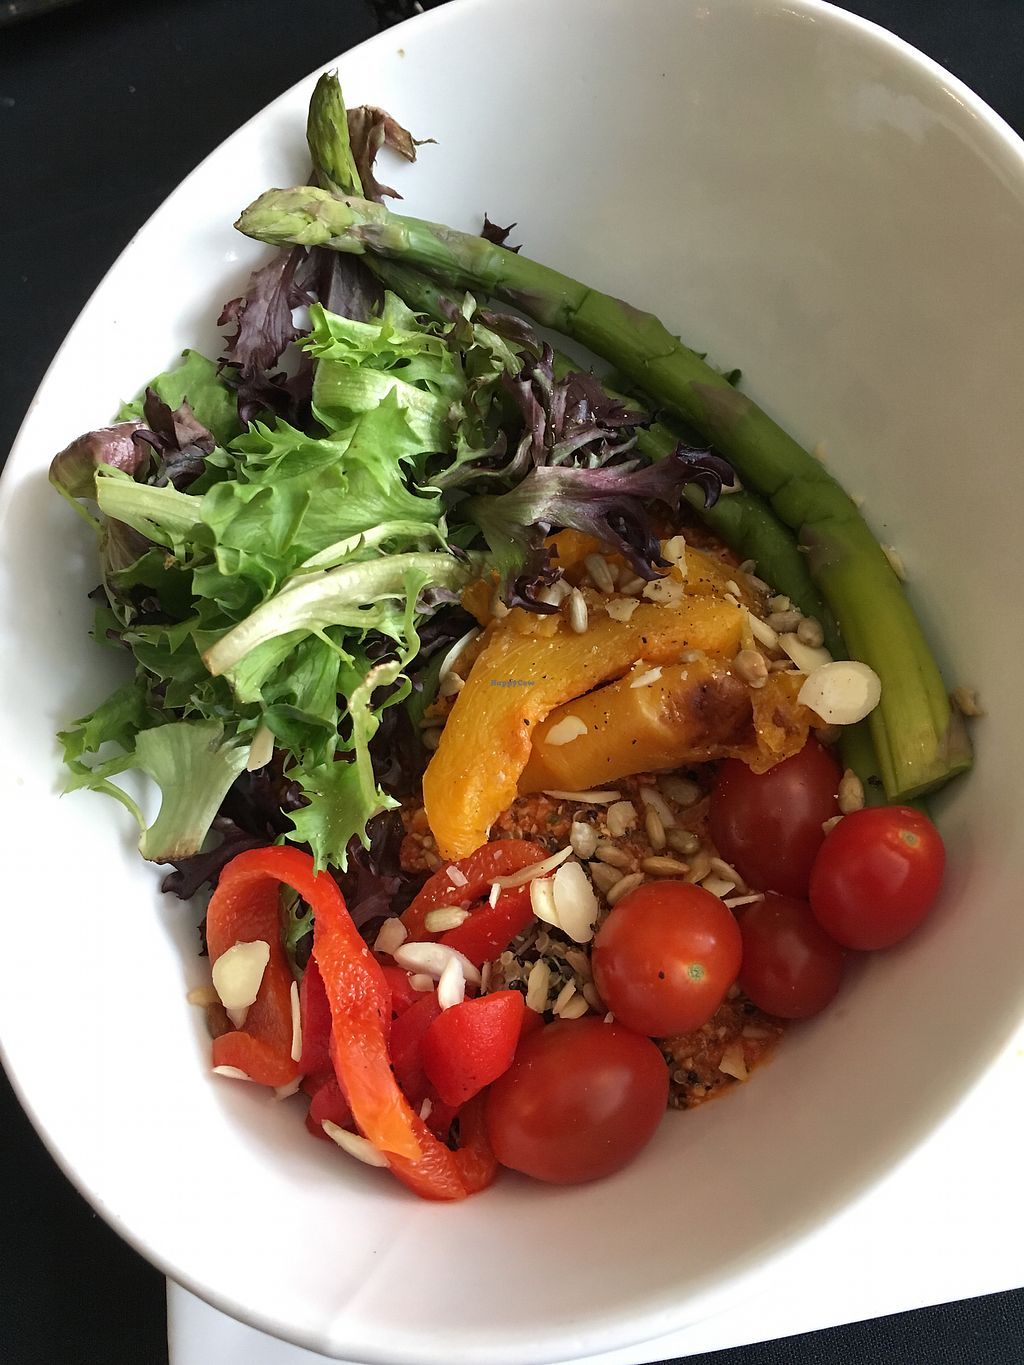 "Photo of The Courtyard Bistro  by <a href=""/members/profile/lovinkarin"">lovinkarin</a> <br/>Buddha Bowl <br/> February 18, 2018  - <a href='/contact/abuse/image/100110/360975'>Report</a>"